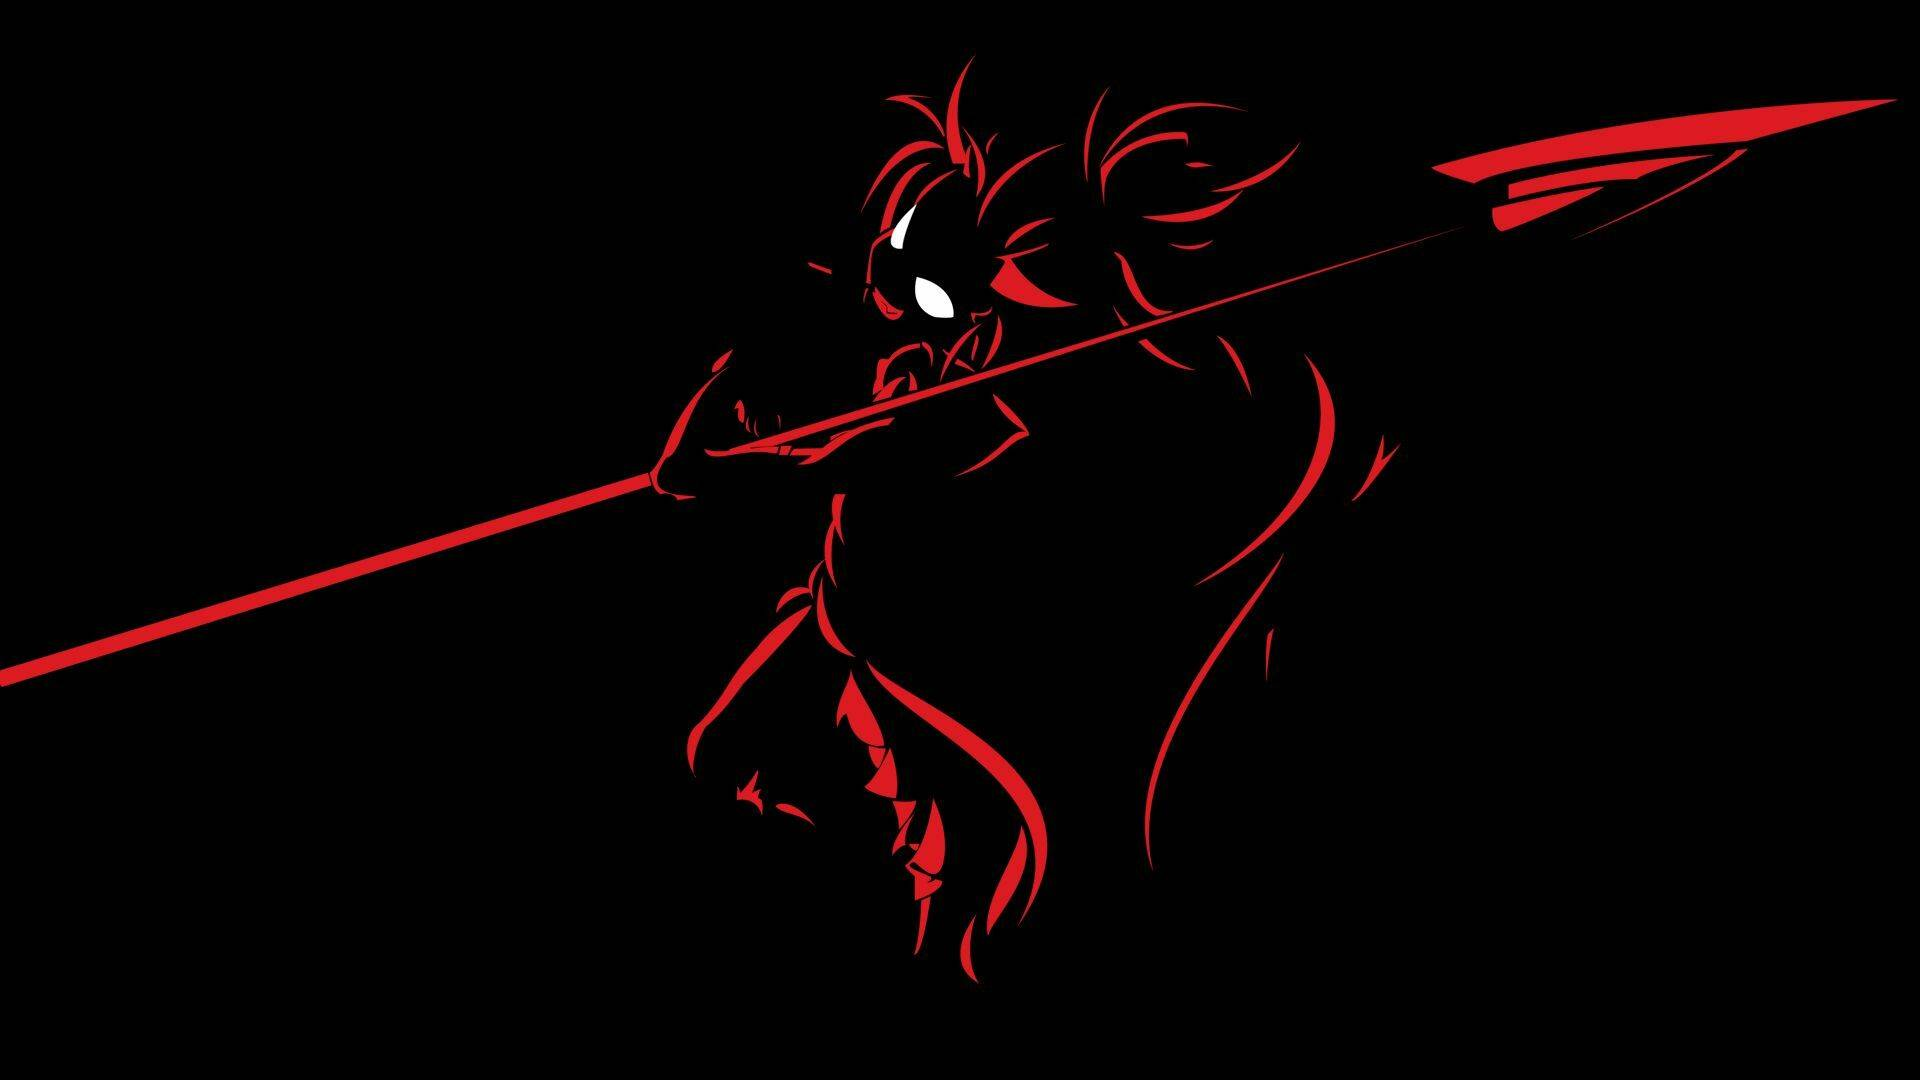 40 Black And Red Anime Desktop Wallpaper Download Free